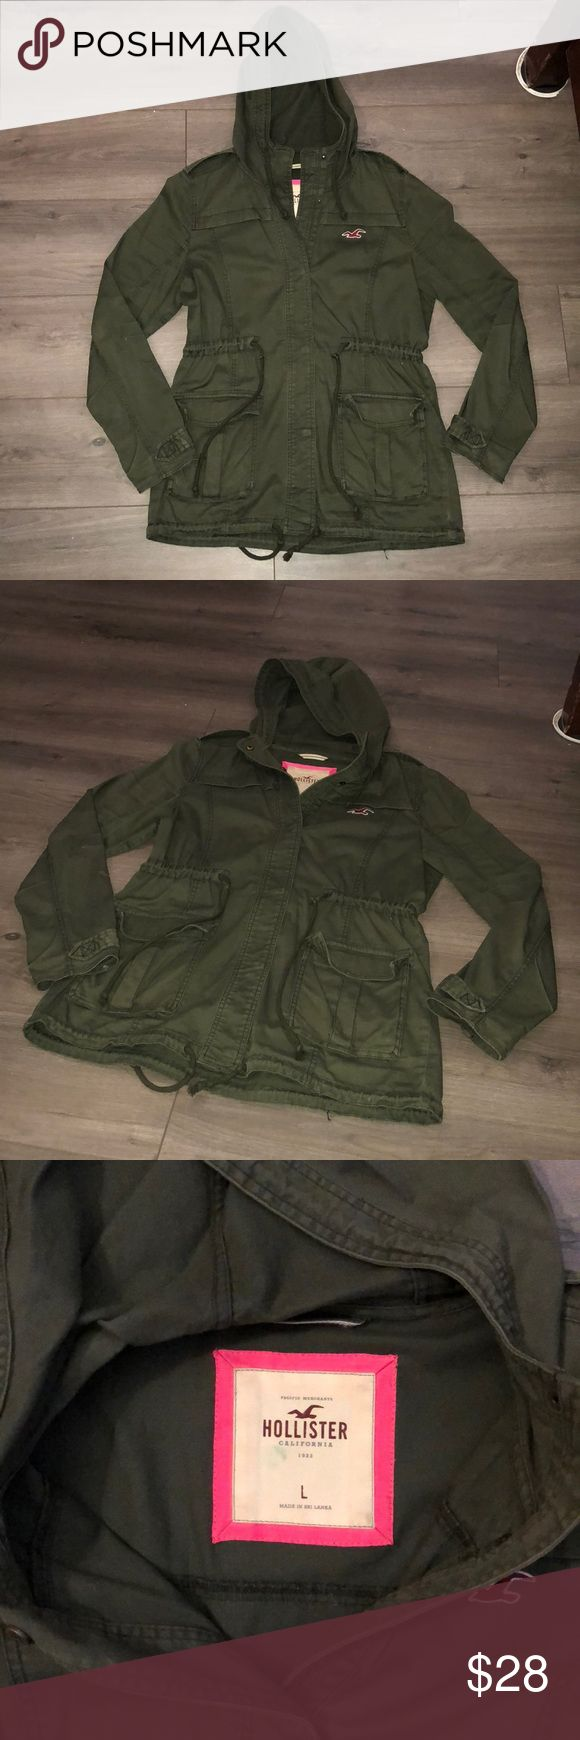 HOLLISTER ANORAK PARKA JACKET HOLLISTER parka/cargo jacket. Used good condition. Olive green size large. The waist area has strings that can be tightened or loosened. Lightweight. Hollister Jackets & Coats Utility Jackets